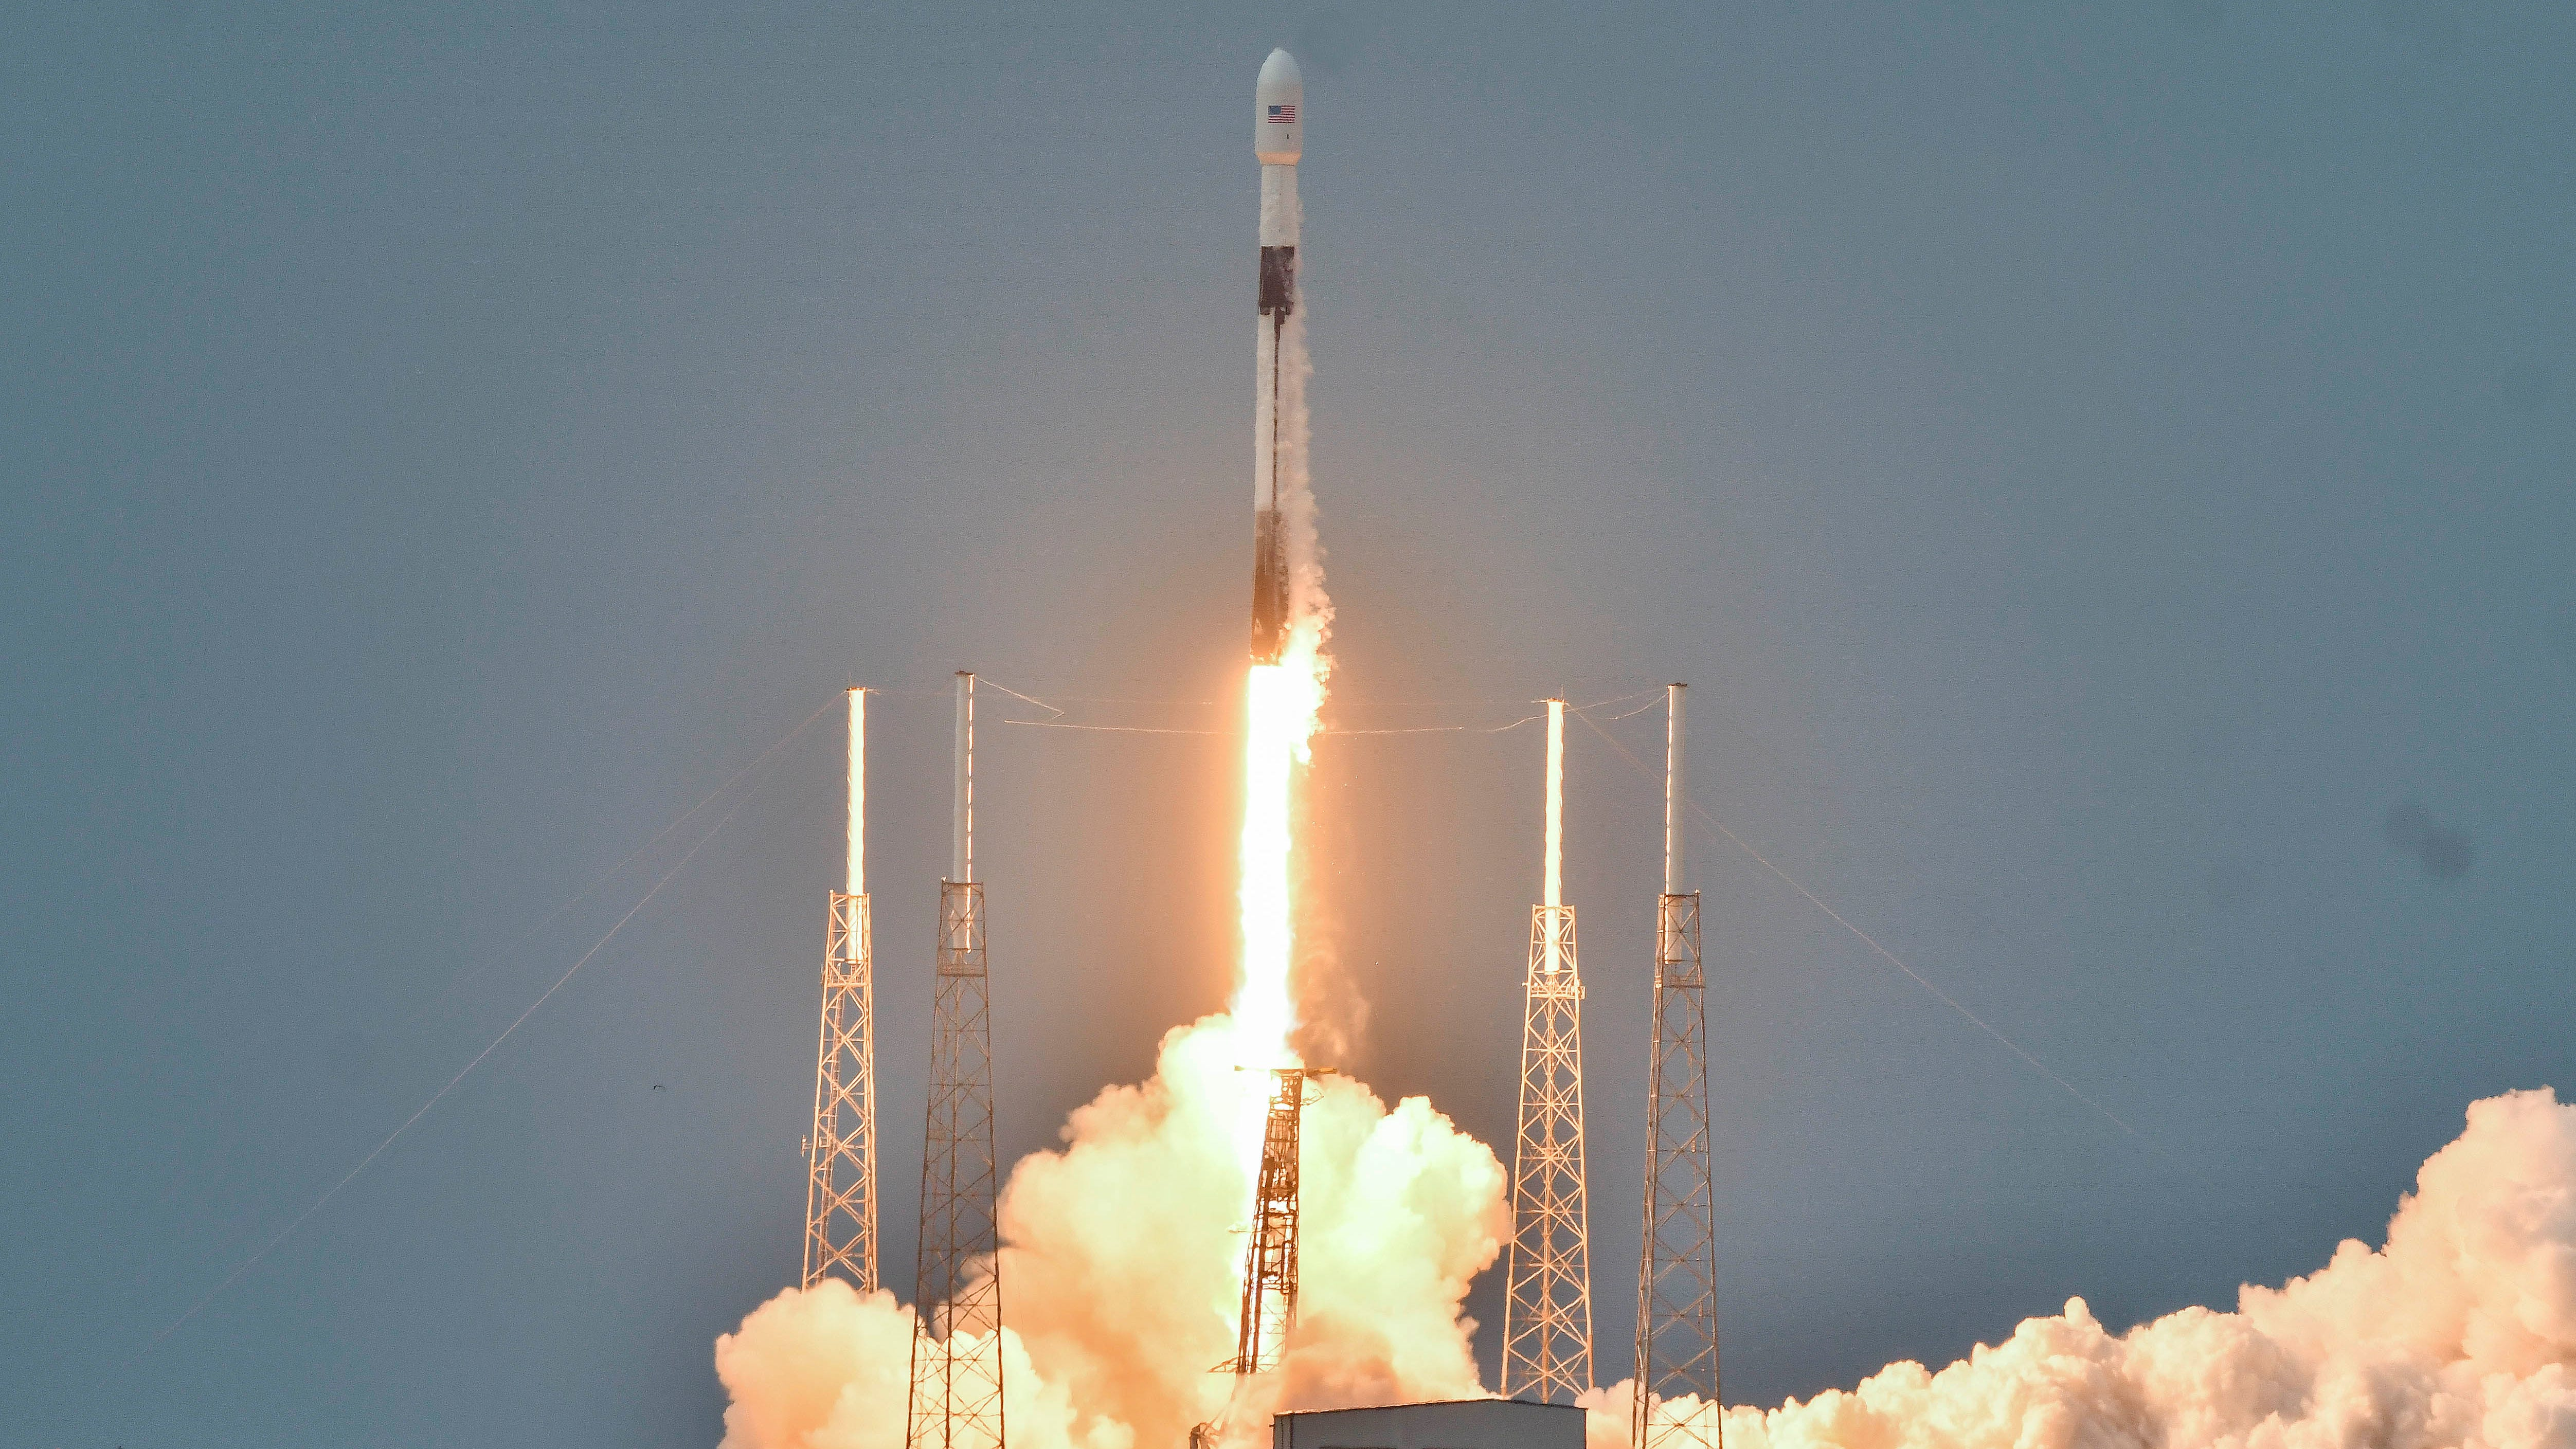 A SpaceX Falcon 9 rocket launches from Cape Canave